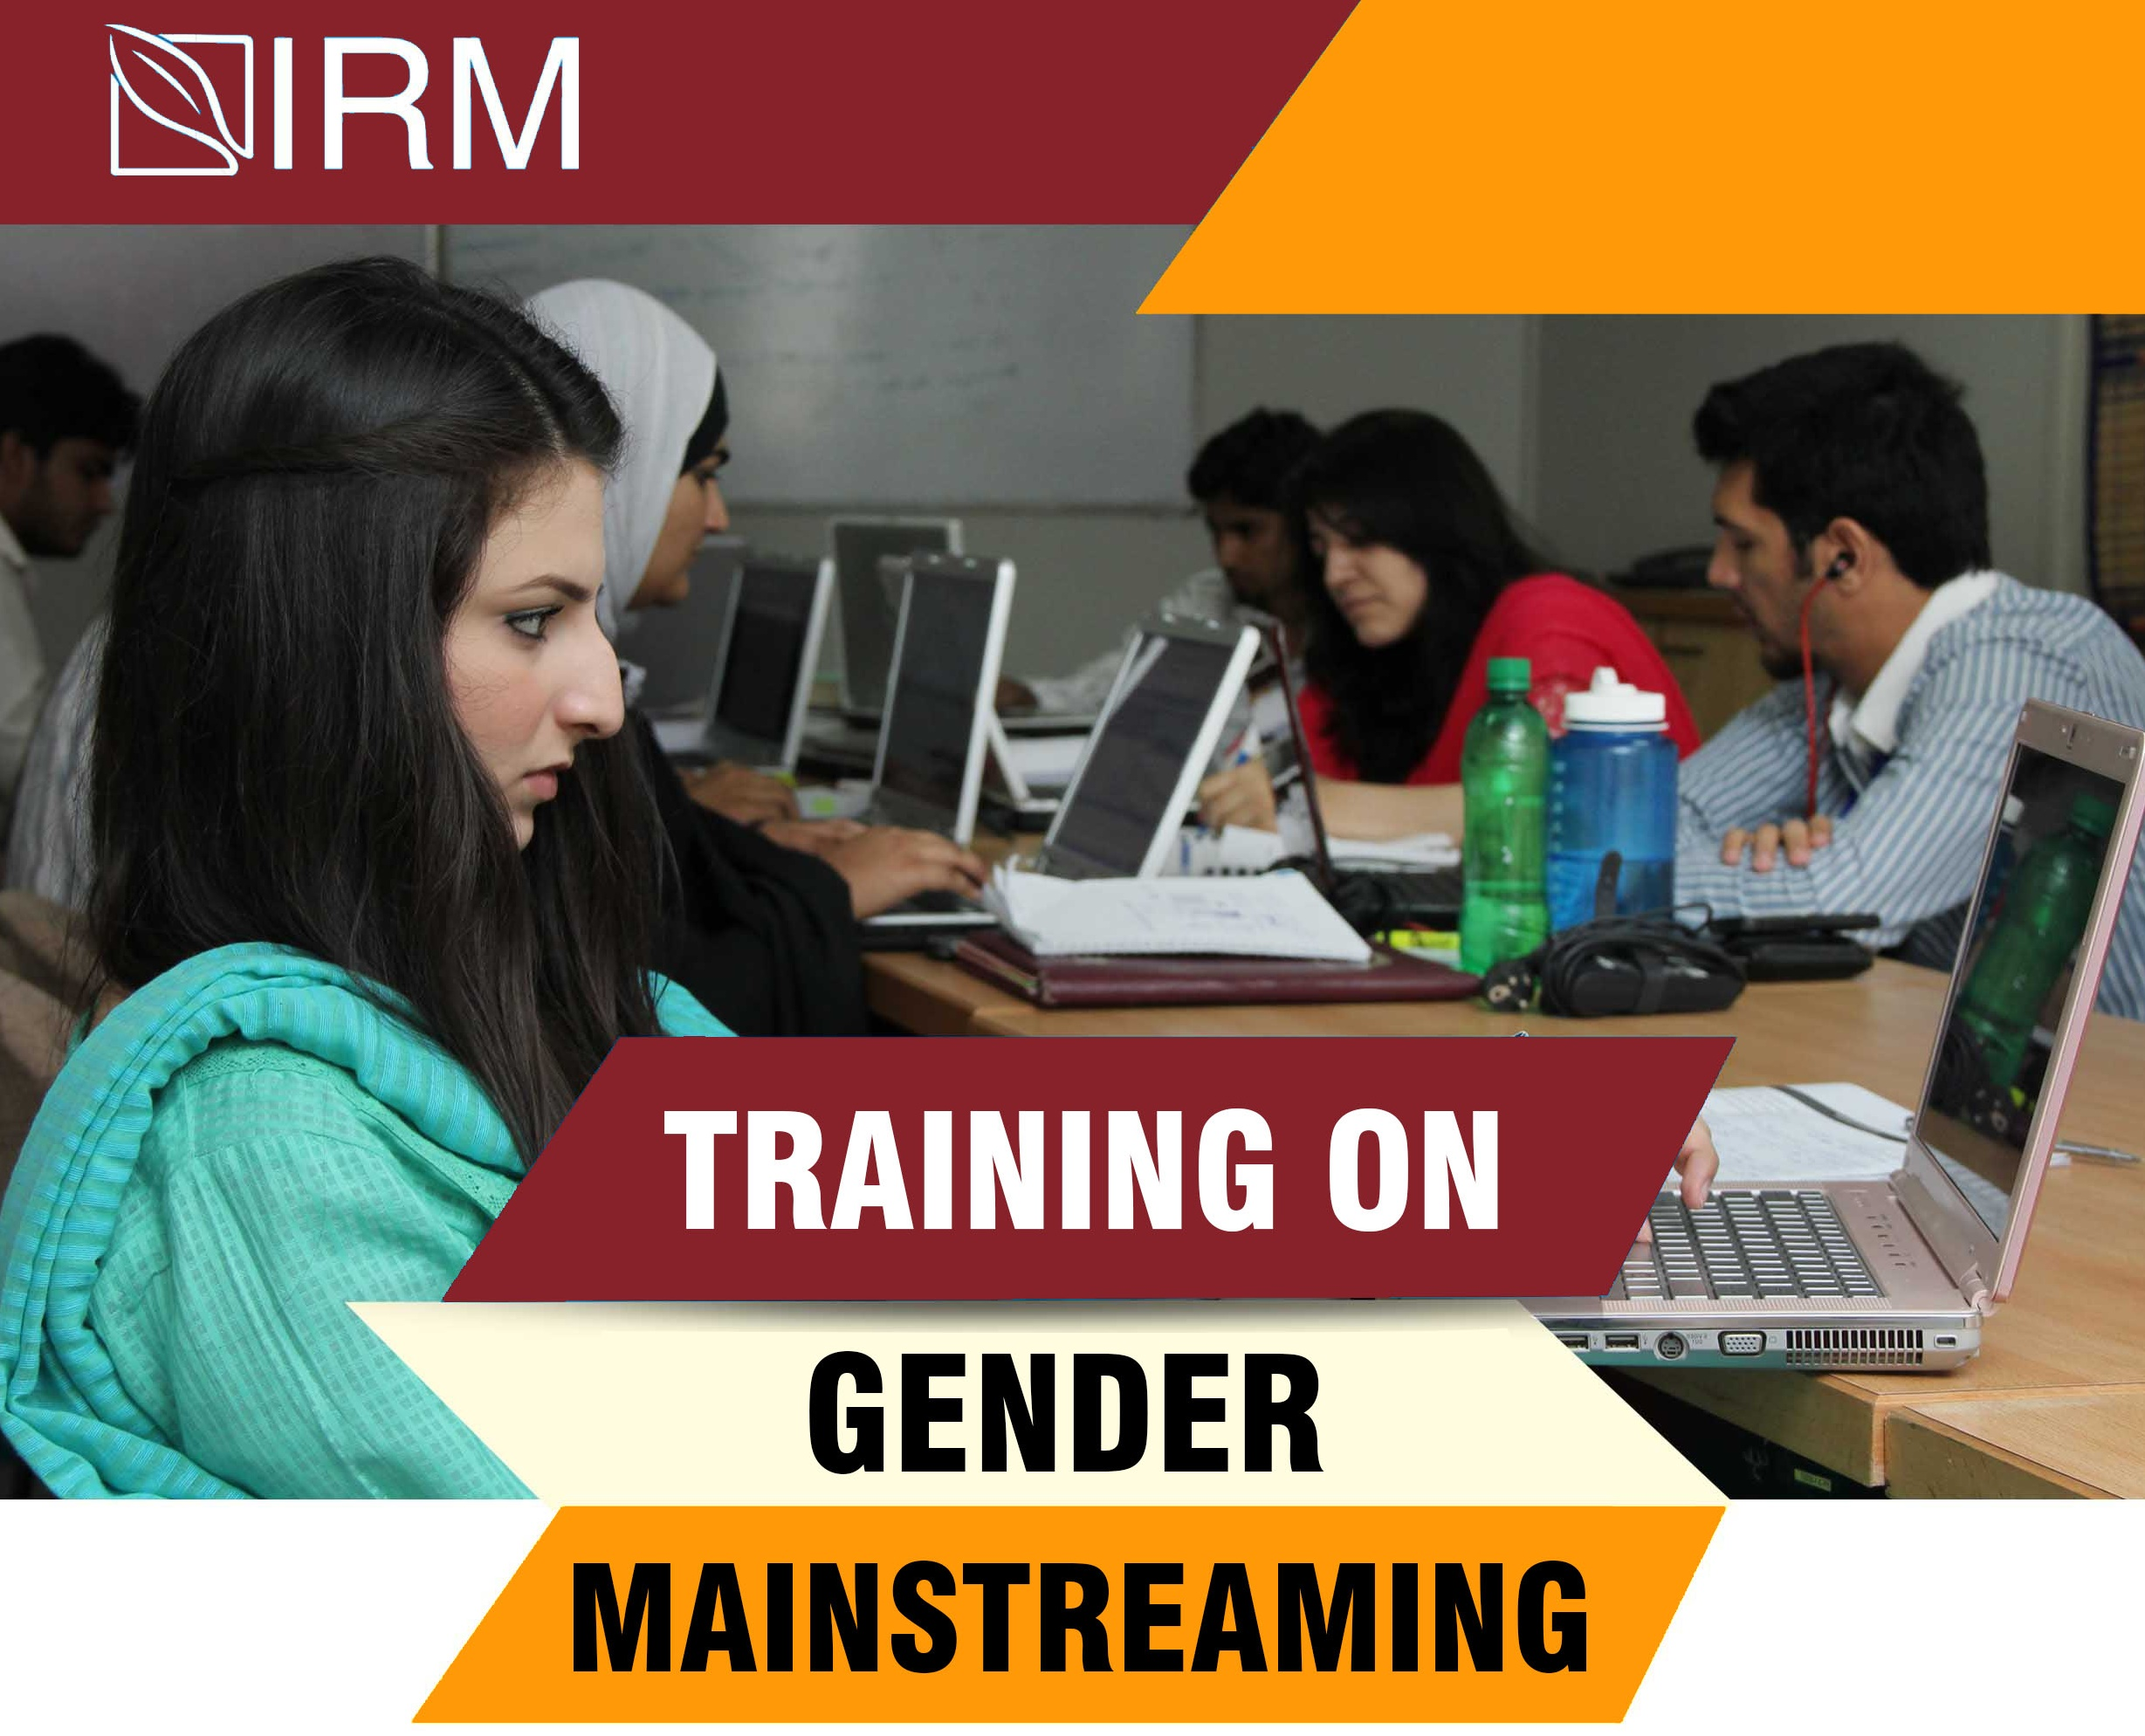 Announcement of Training on Gender Mainstreaming